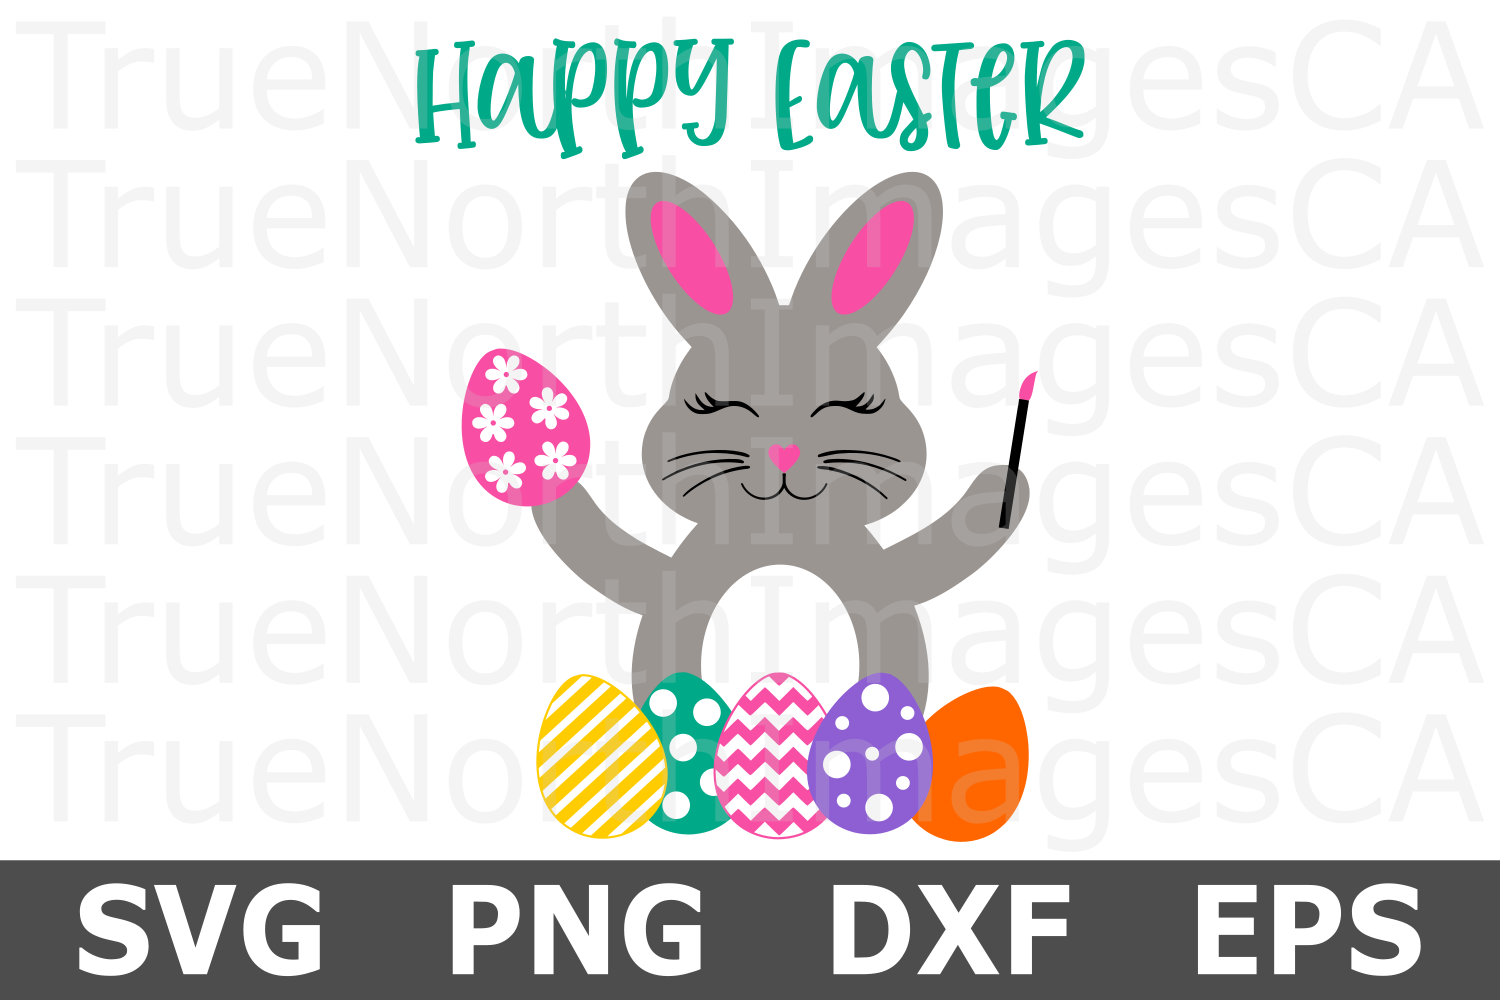 Painting Eggs - An Easter SVG Cut File example image 1